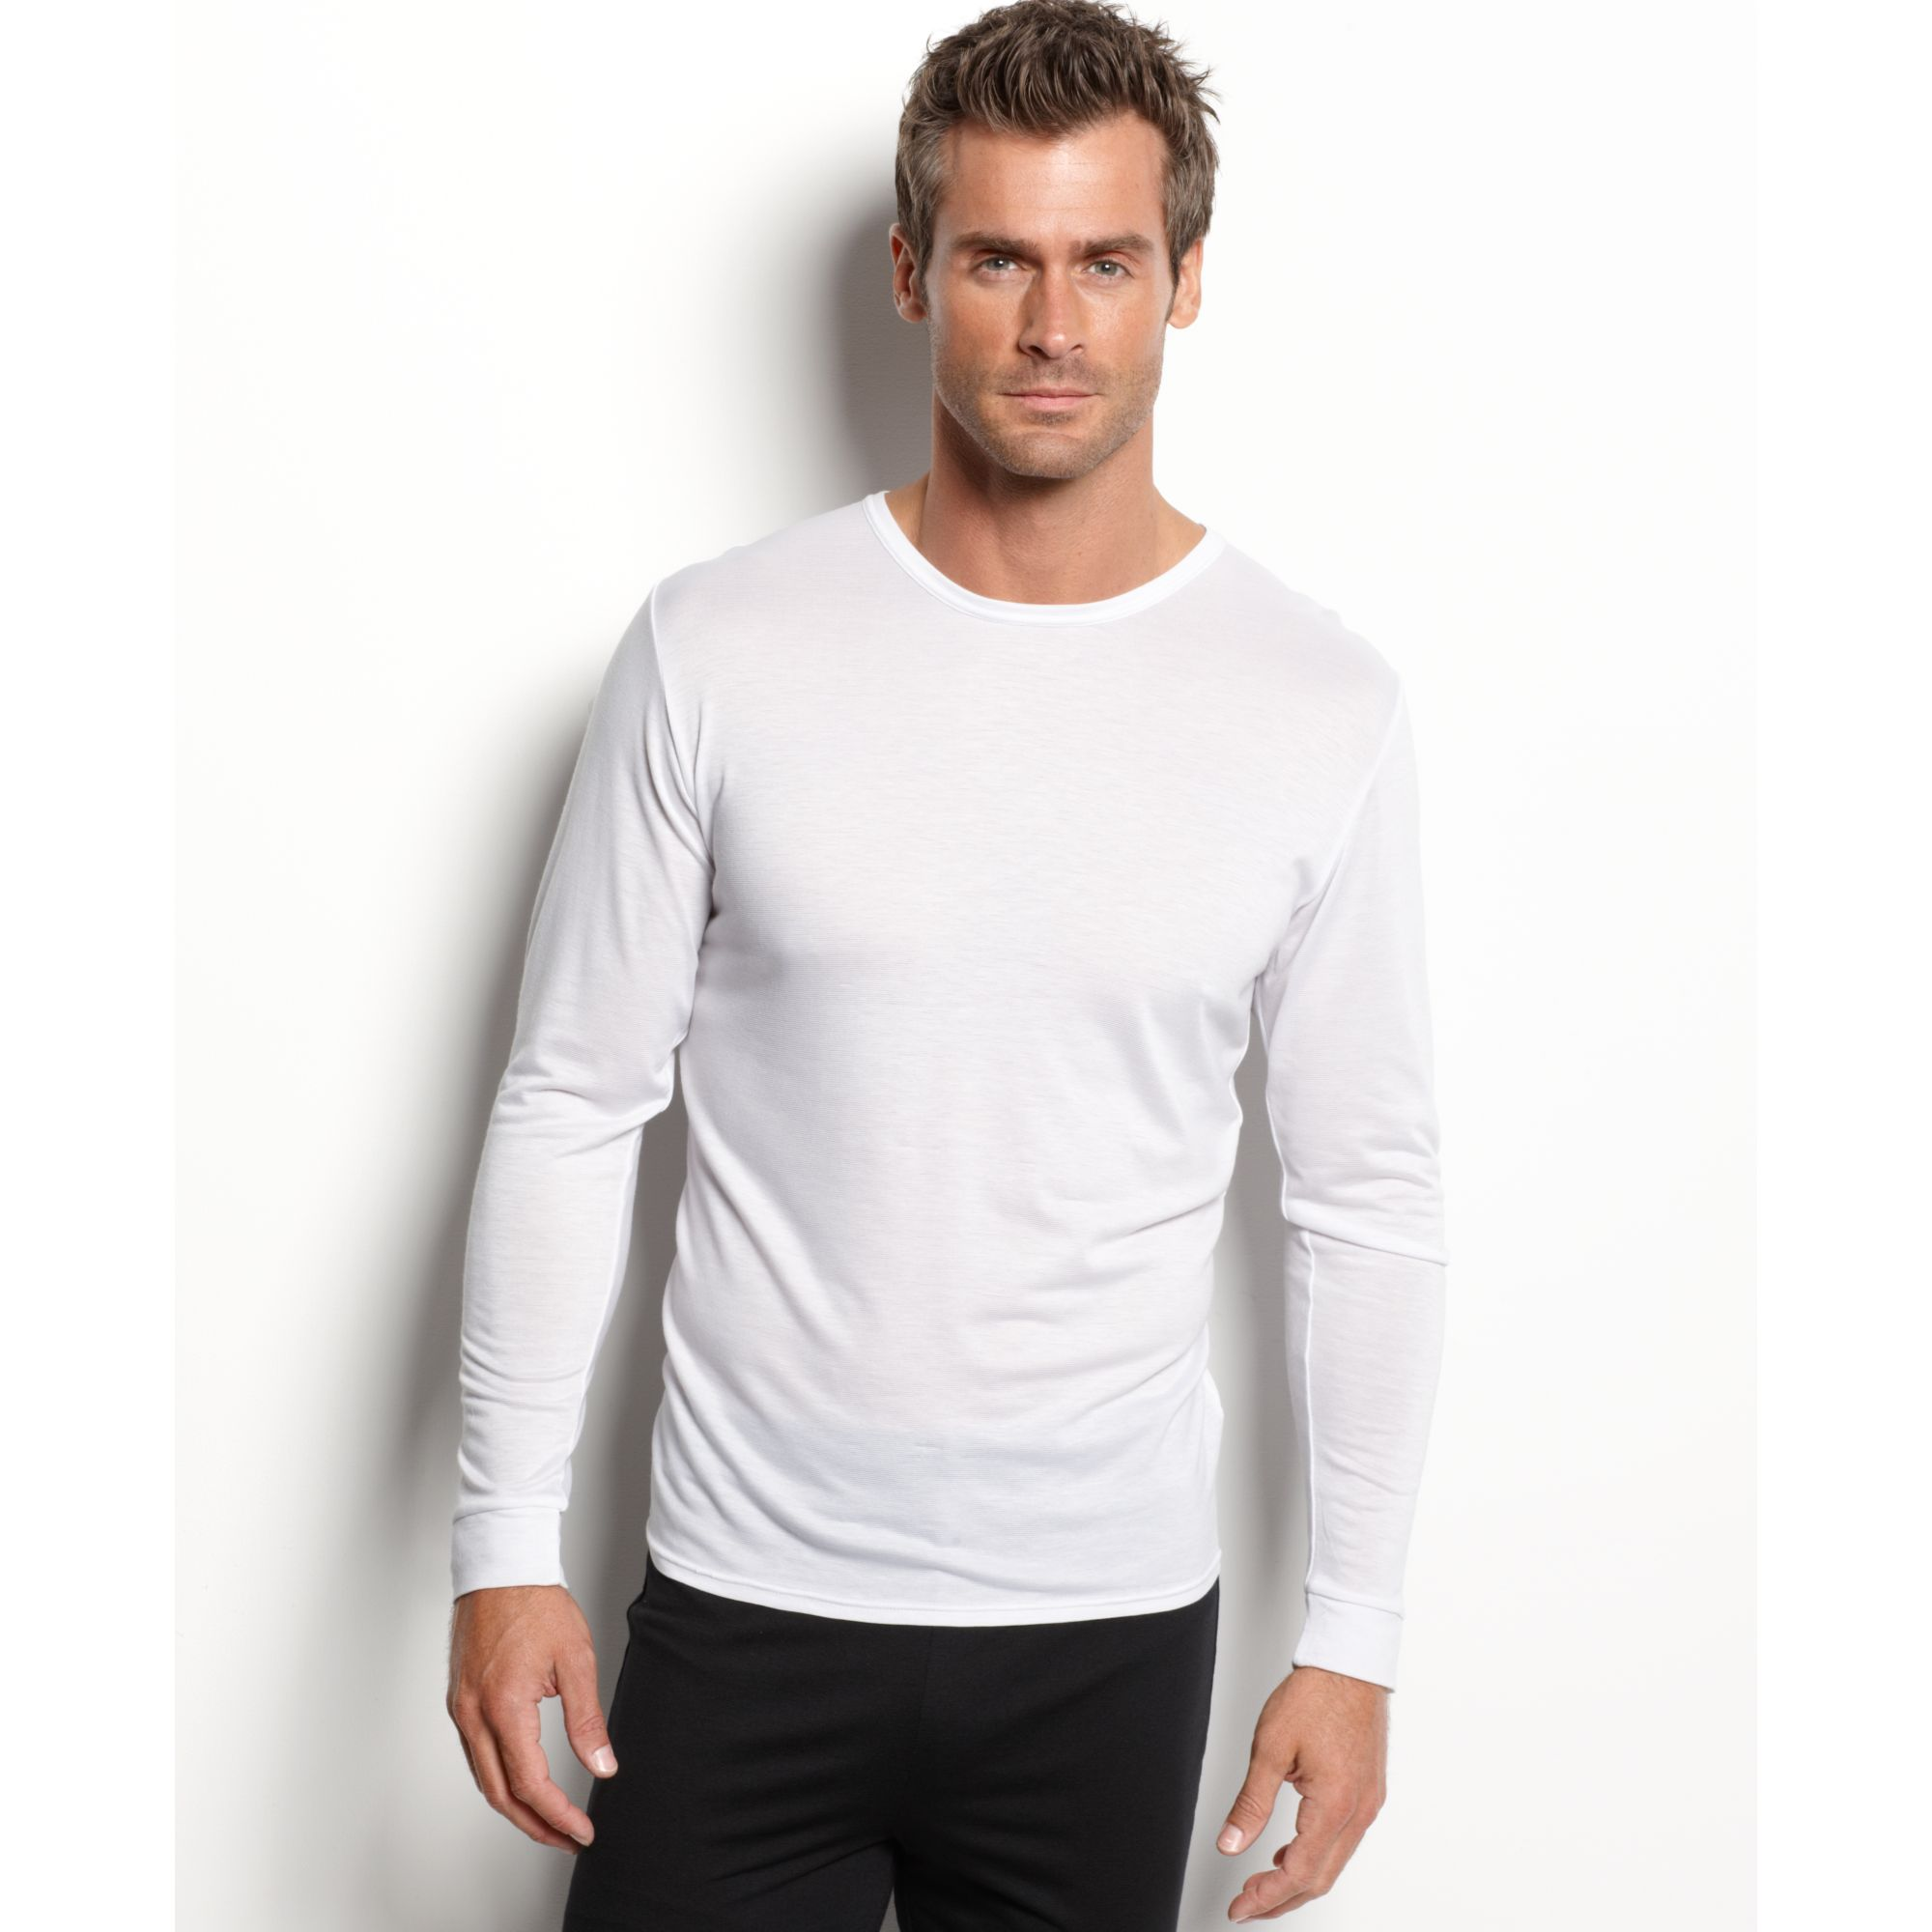 Thermal Jeans For Men